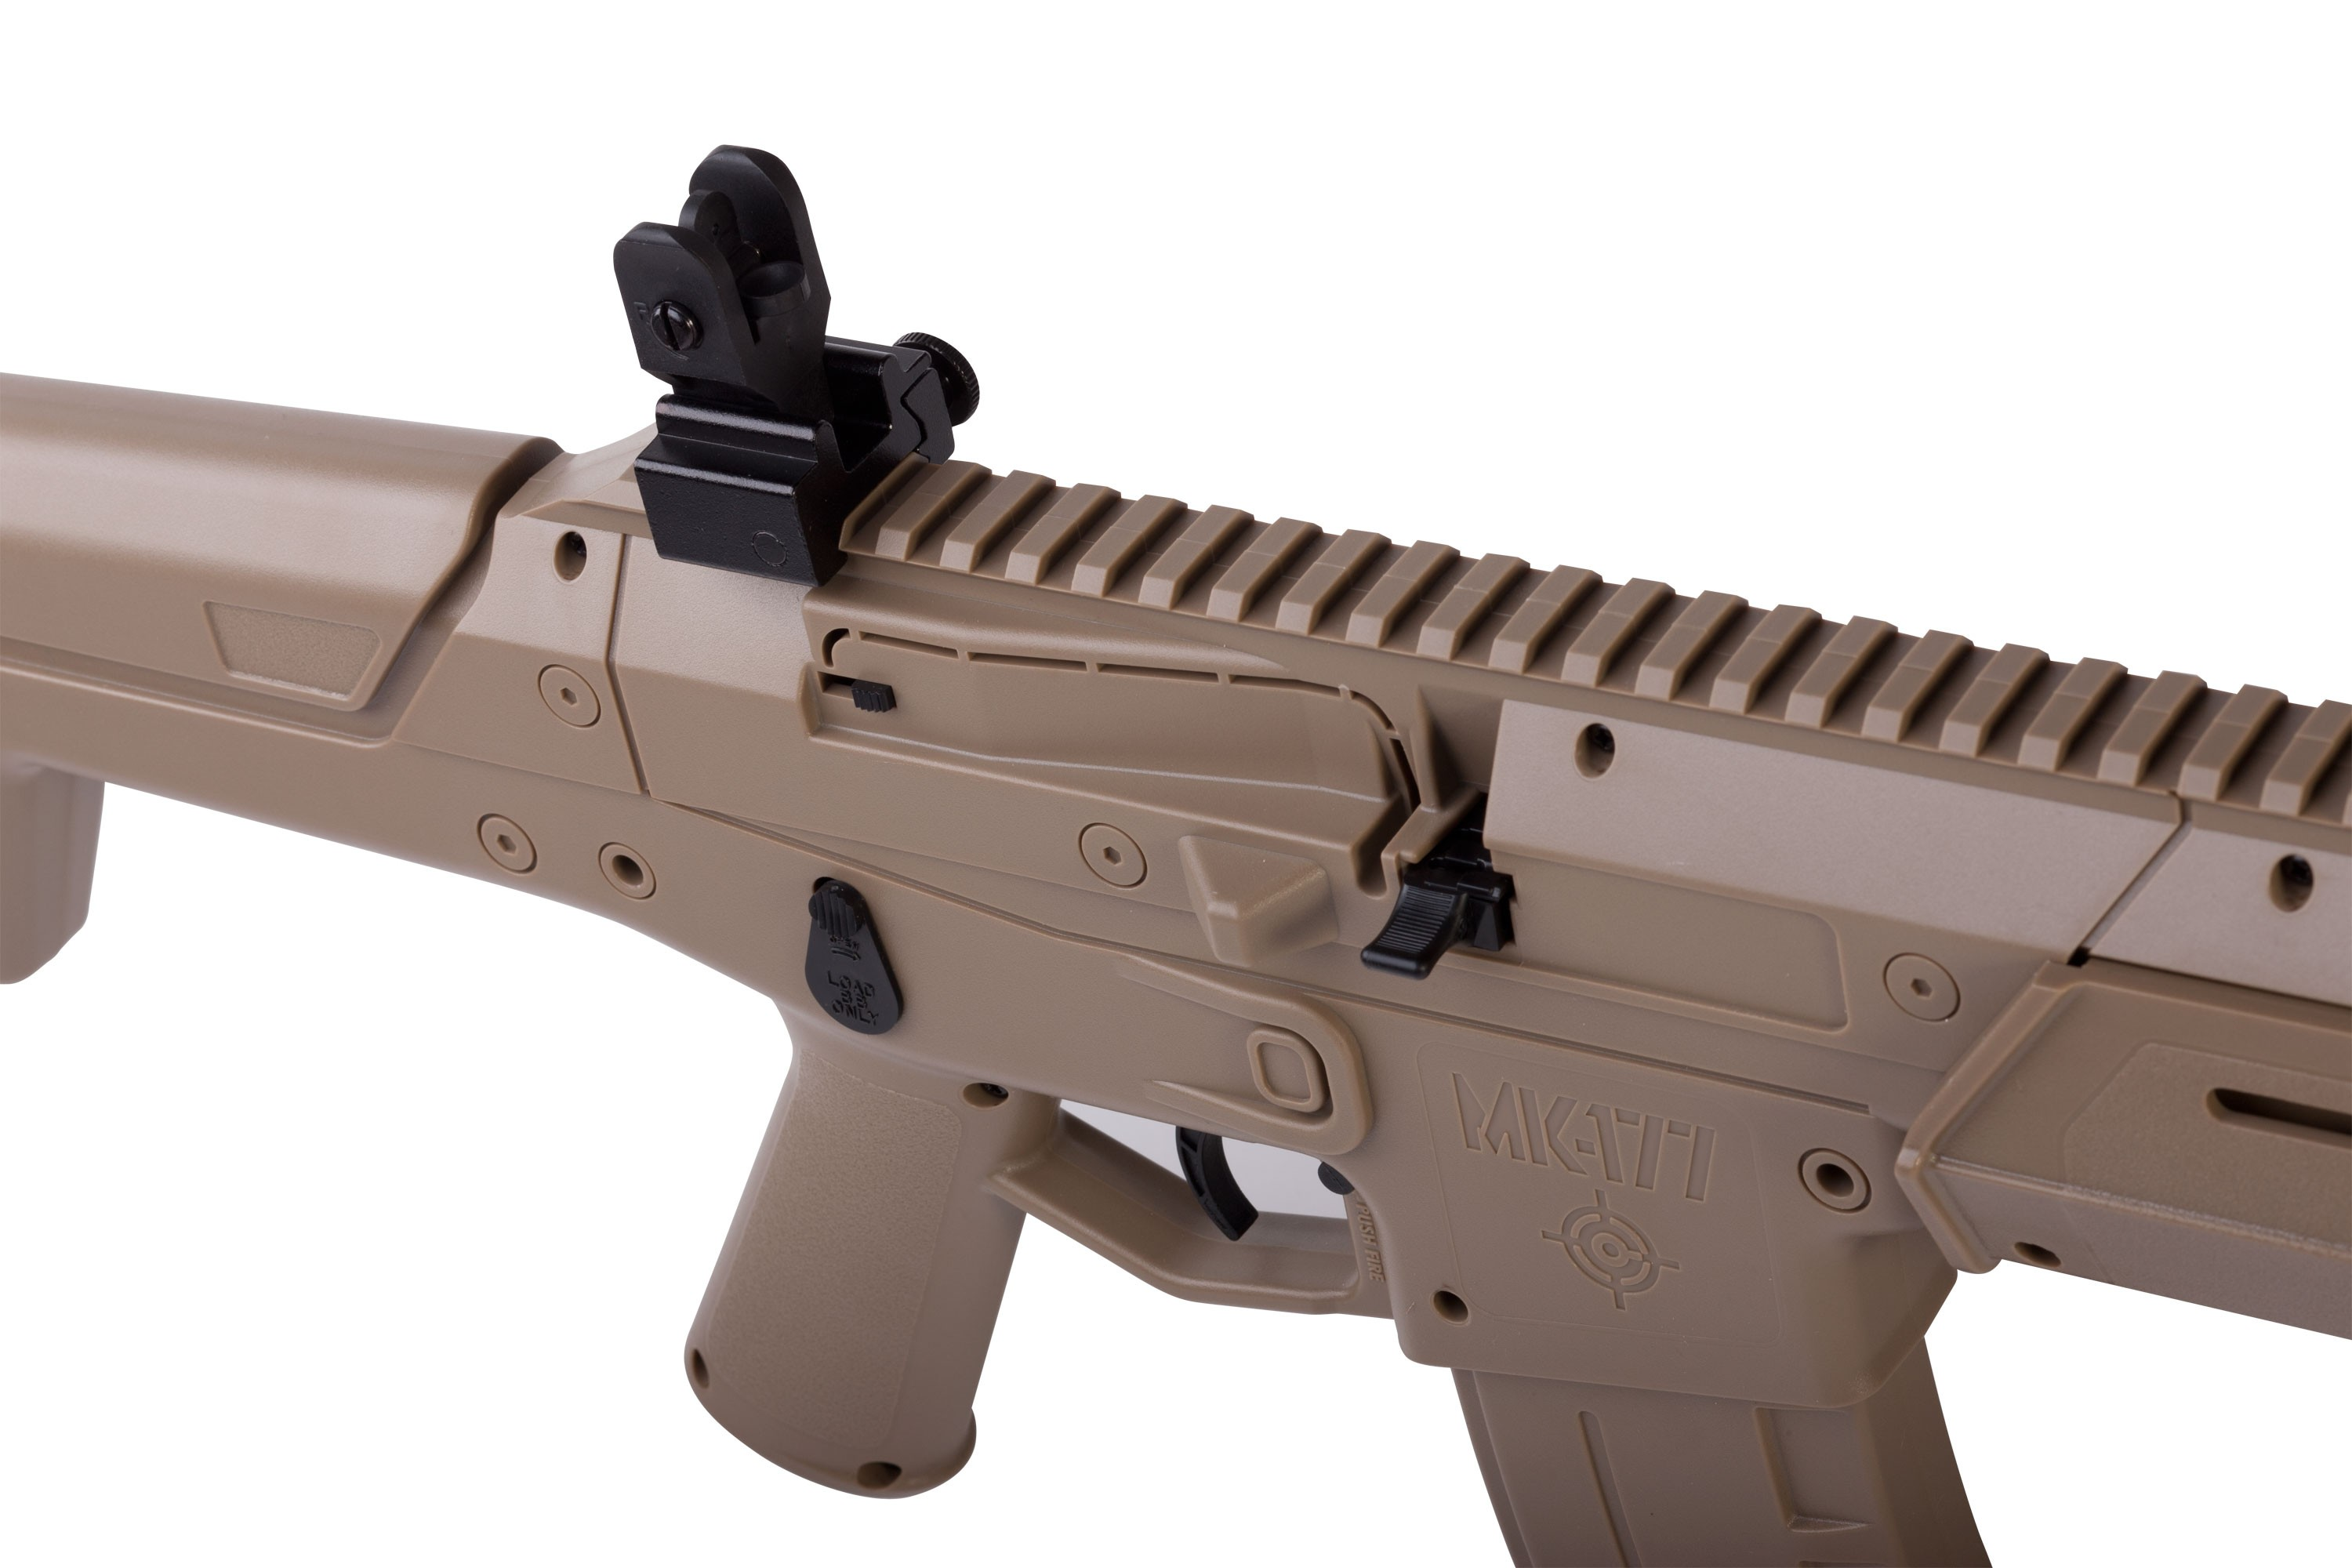 crosman mk-177 tan tactical air gun | crosman mk-177 tan tactical air gun review